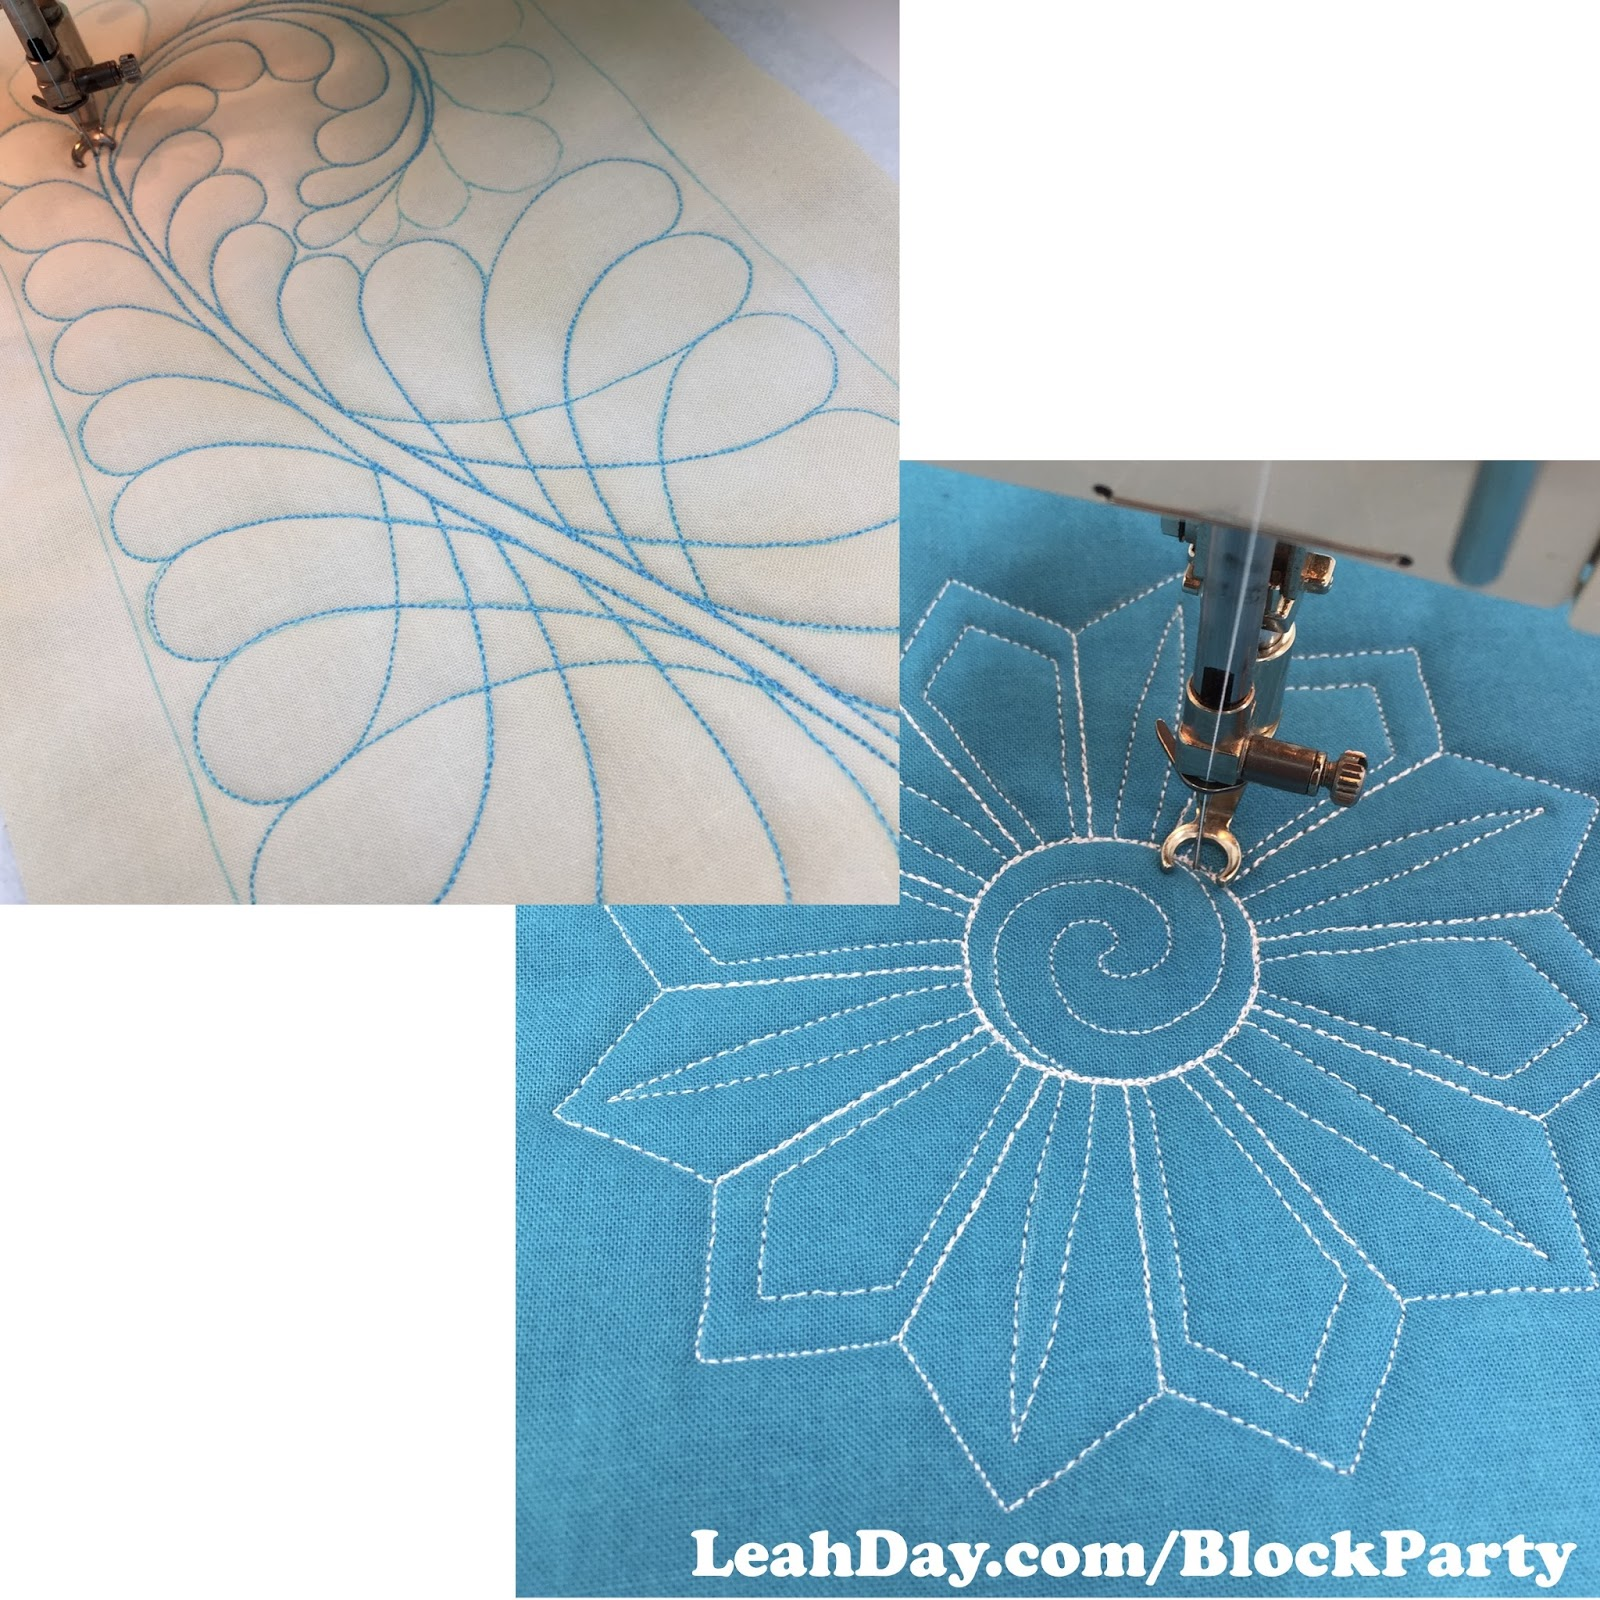 Quilting Designs Sashing : The Free Motion Quilting Project: Let s Quilt Sashing and Cornerstones!